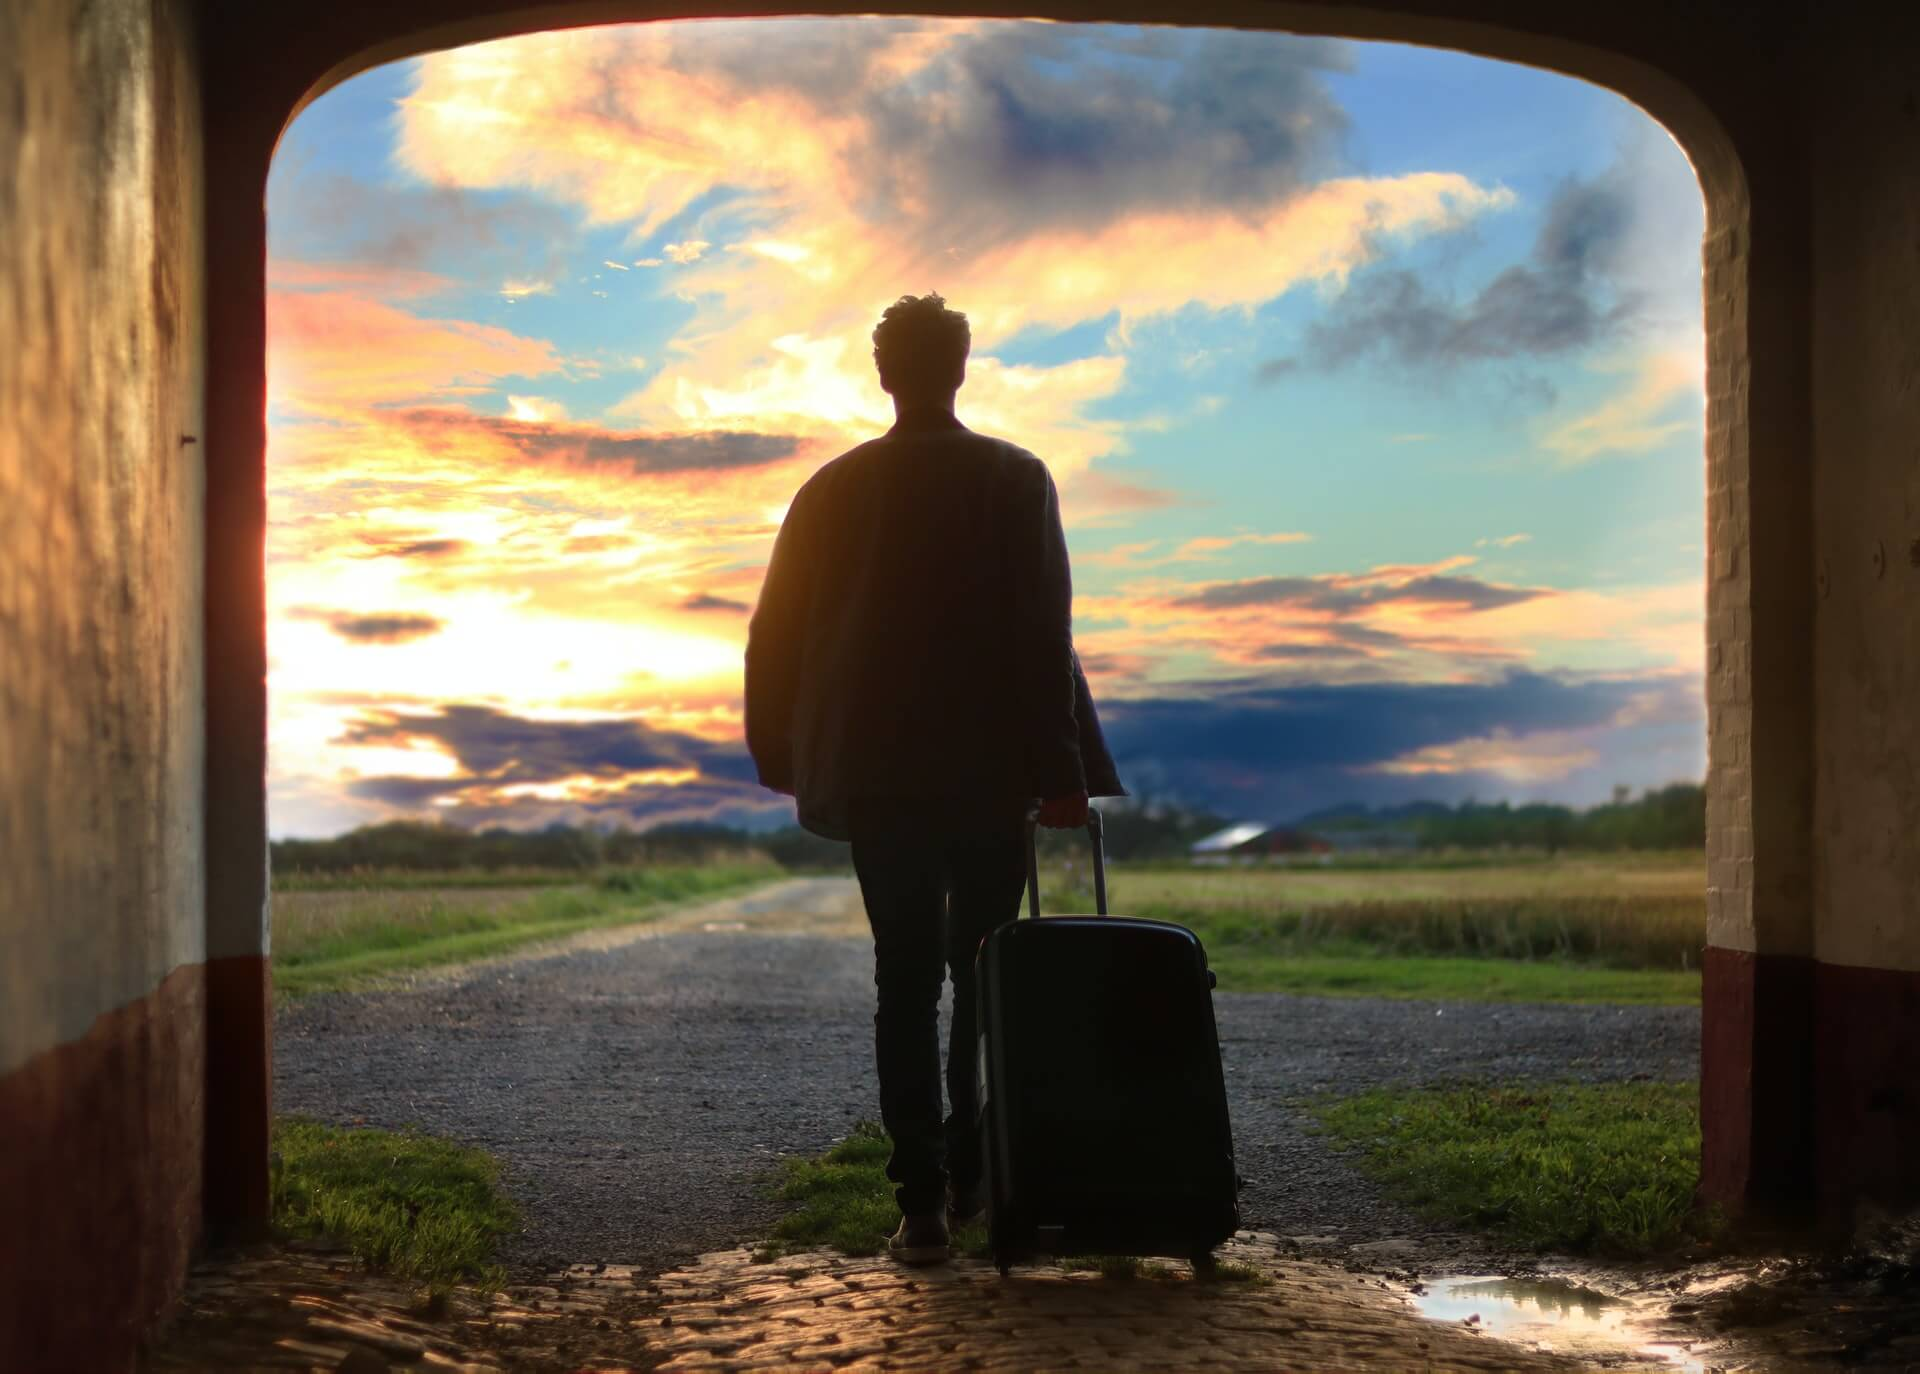 A man travelling without friends or problems exits a tunnel into a sunset